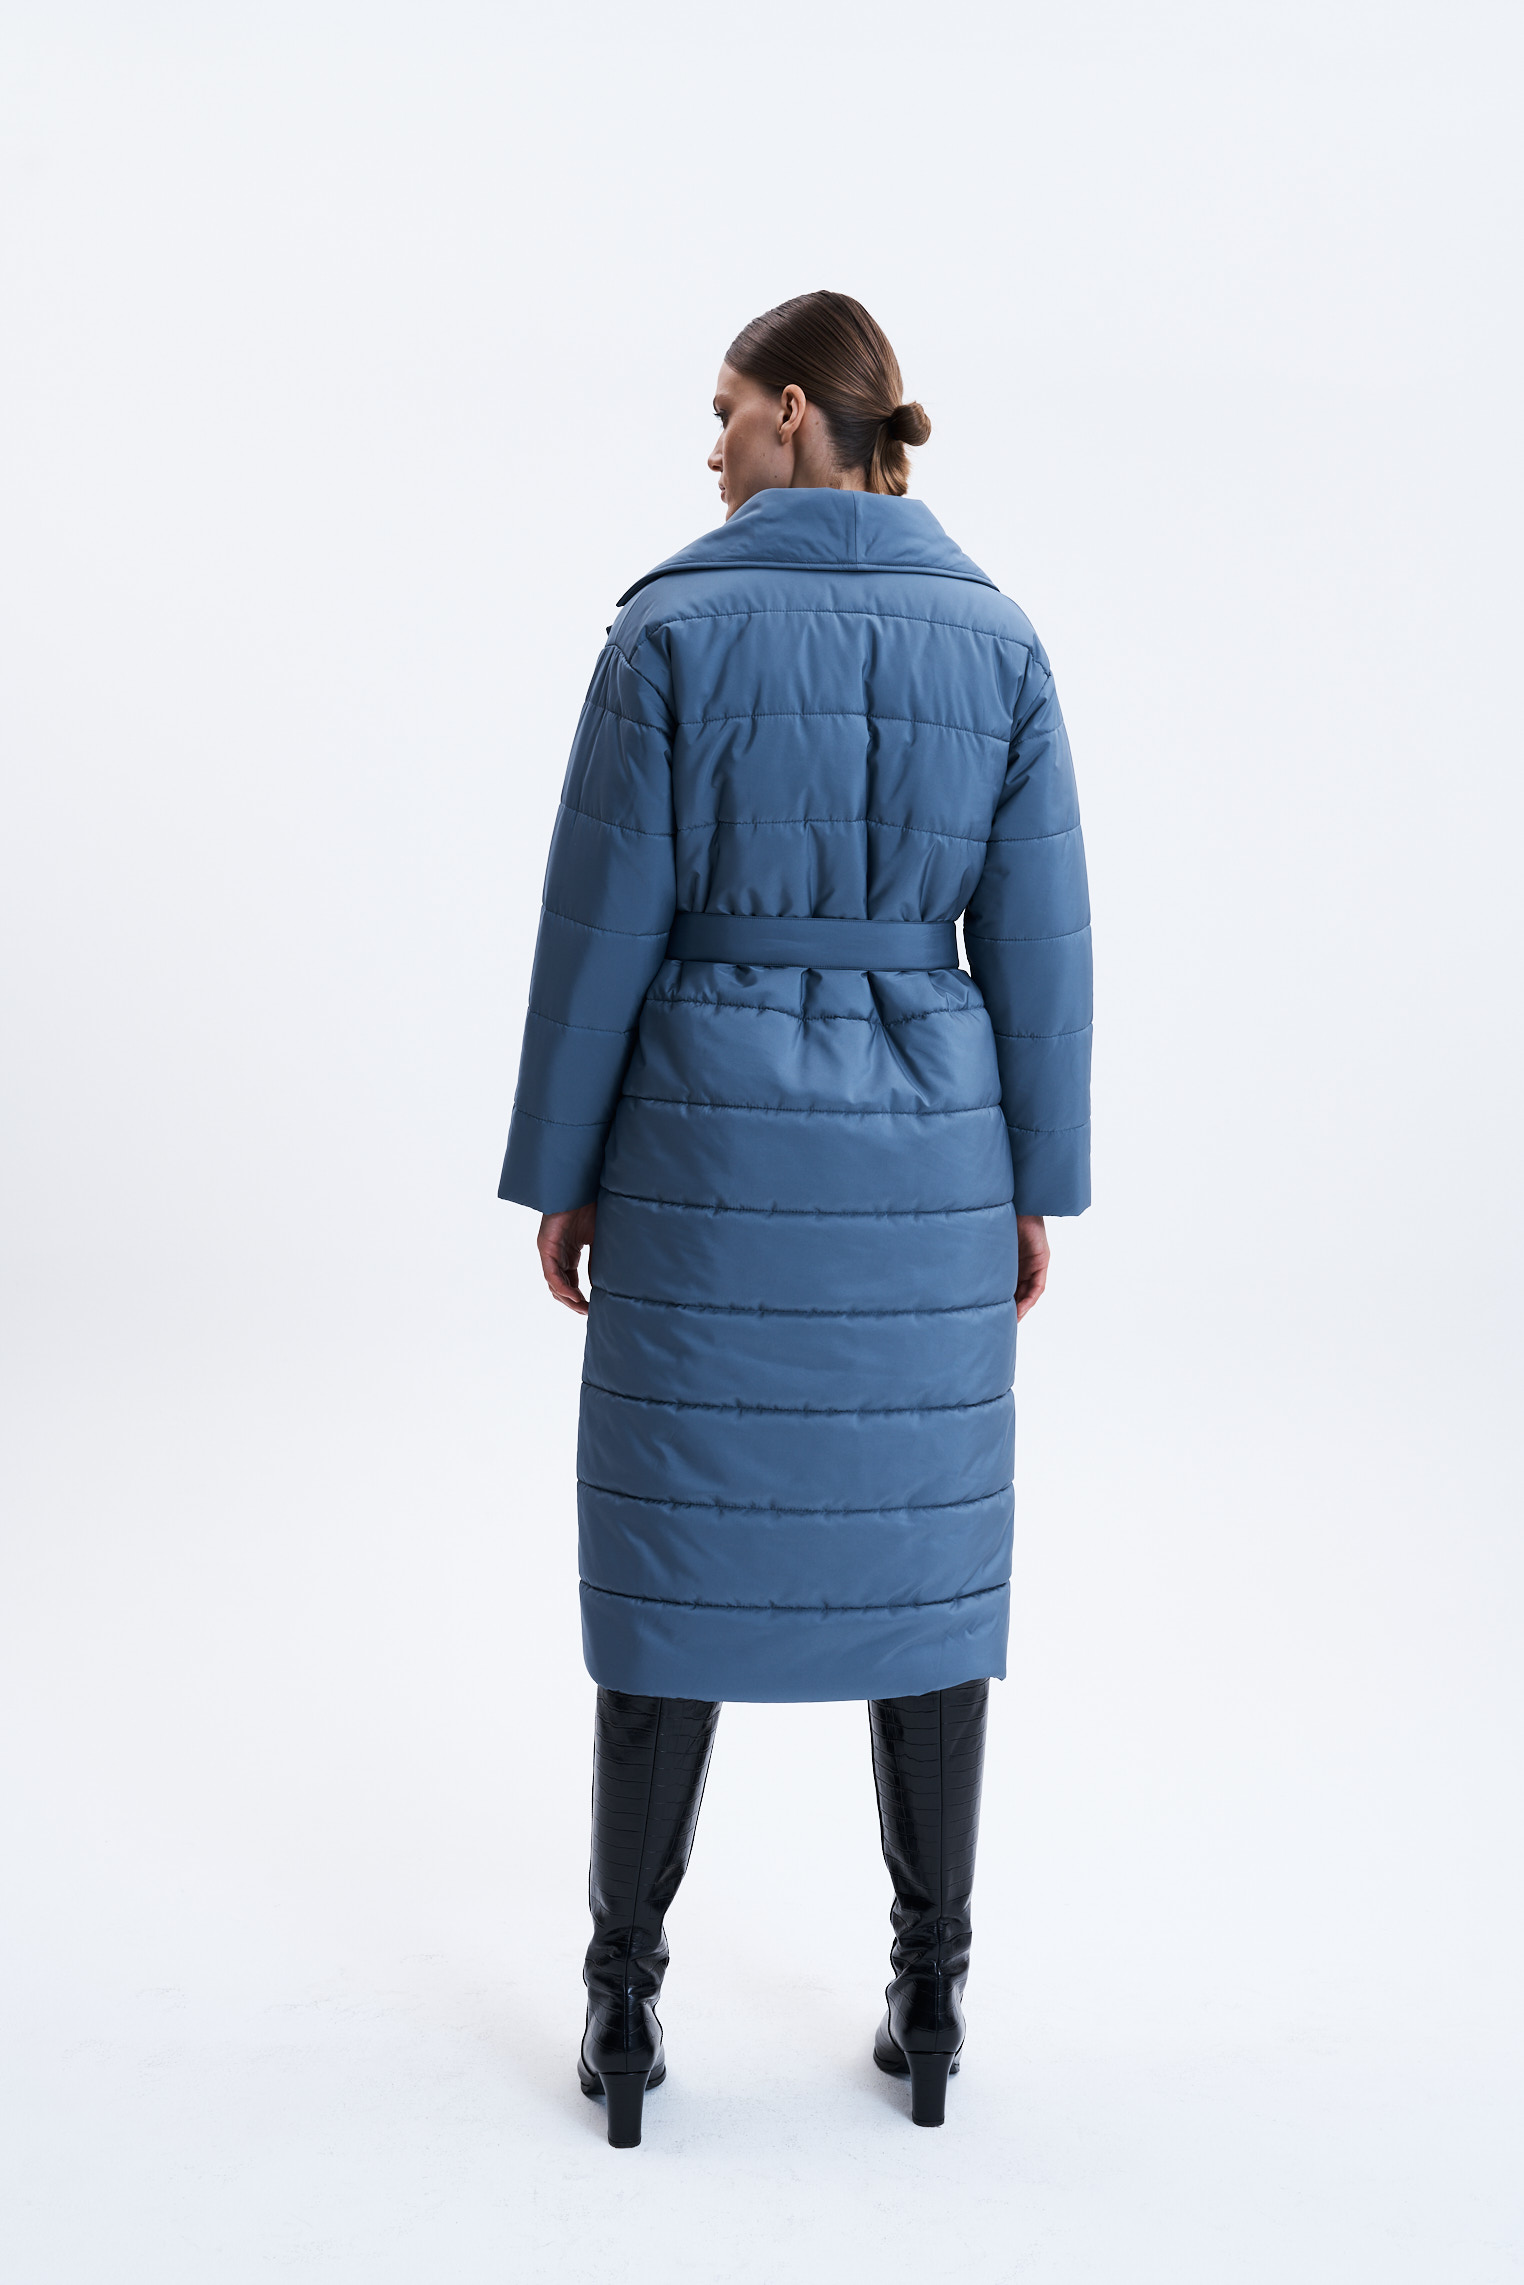 GESTEPPTER TRENCH - GRAPHIT